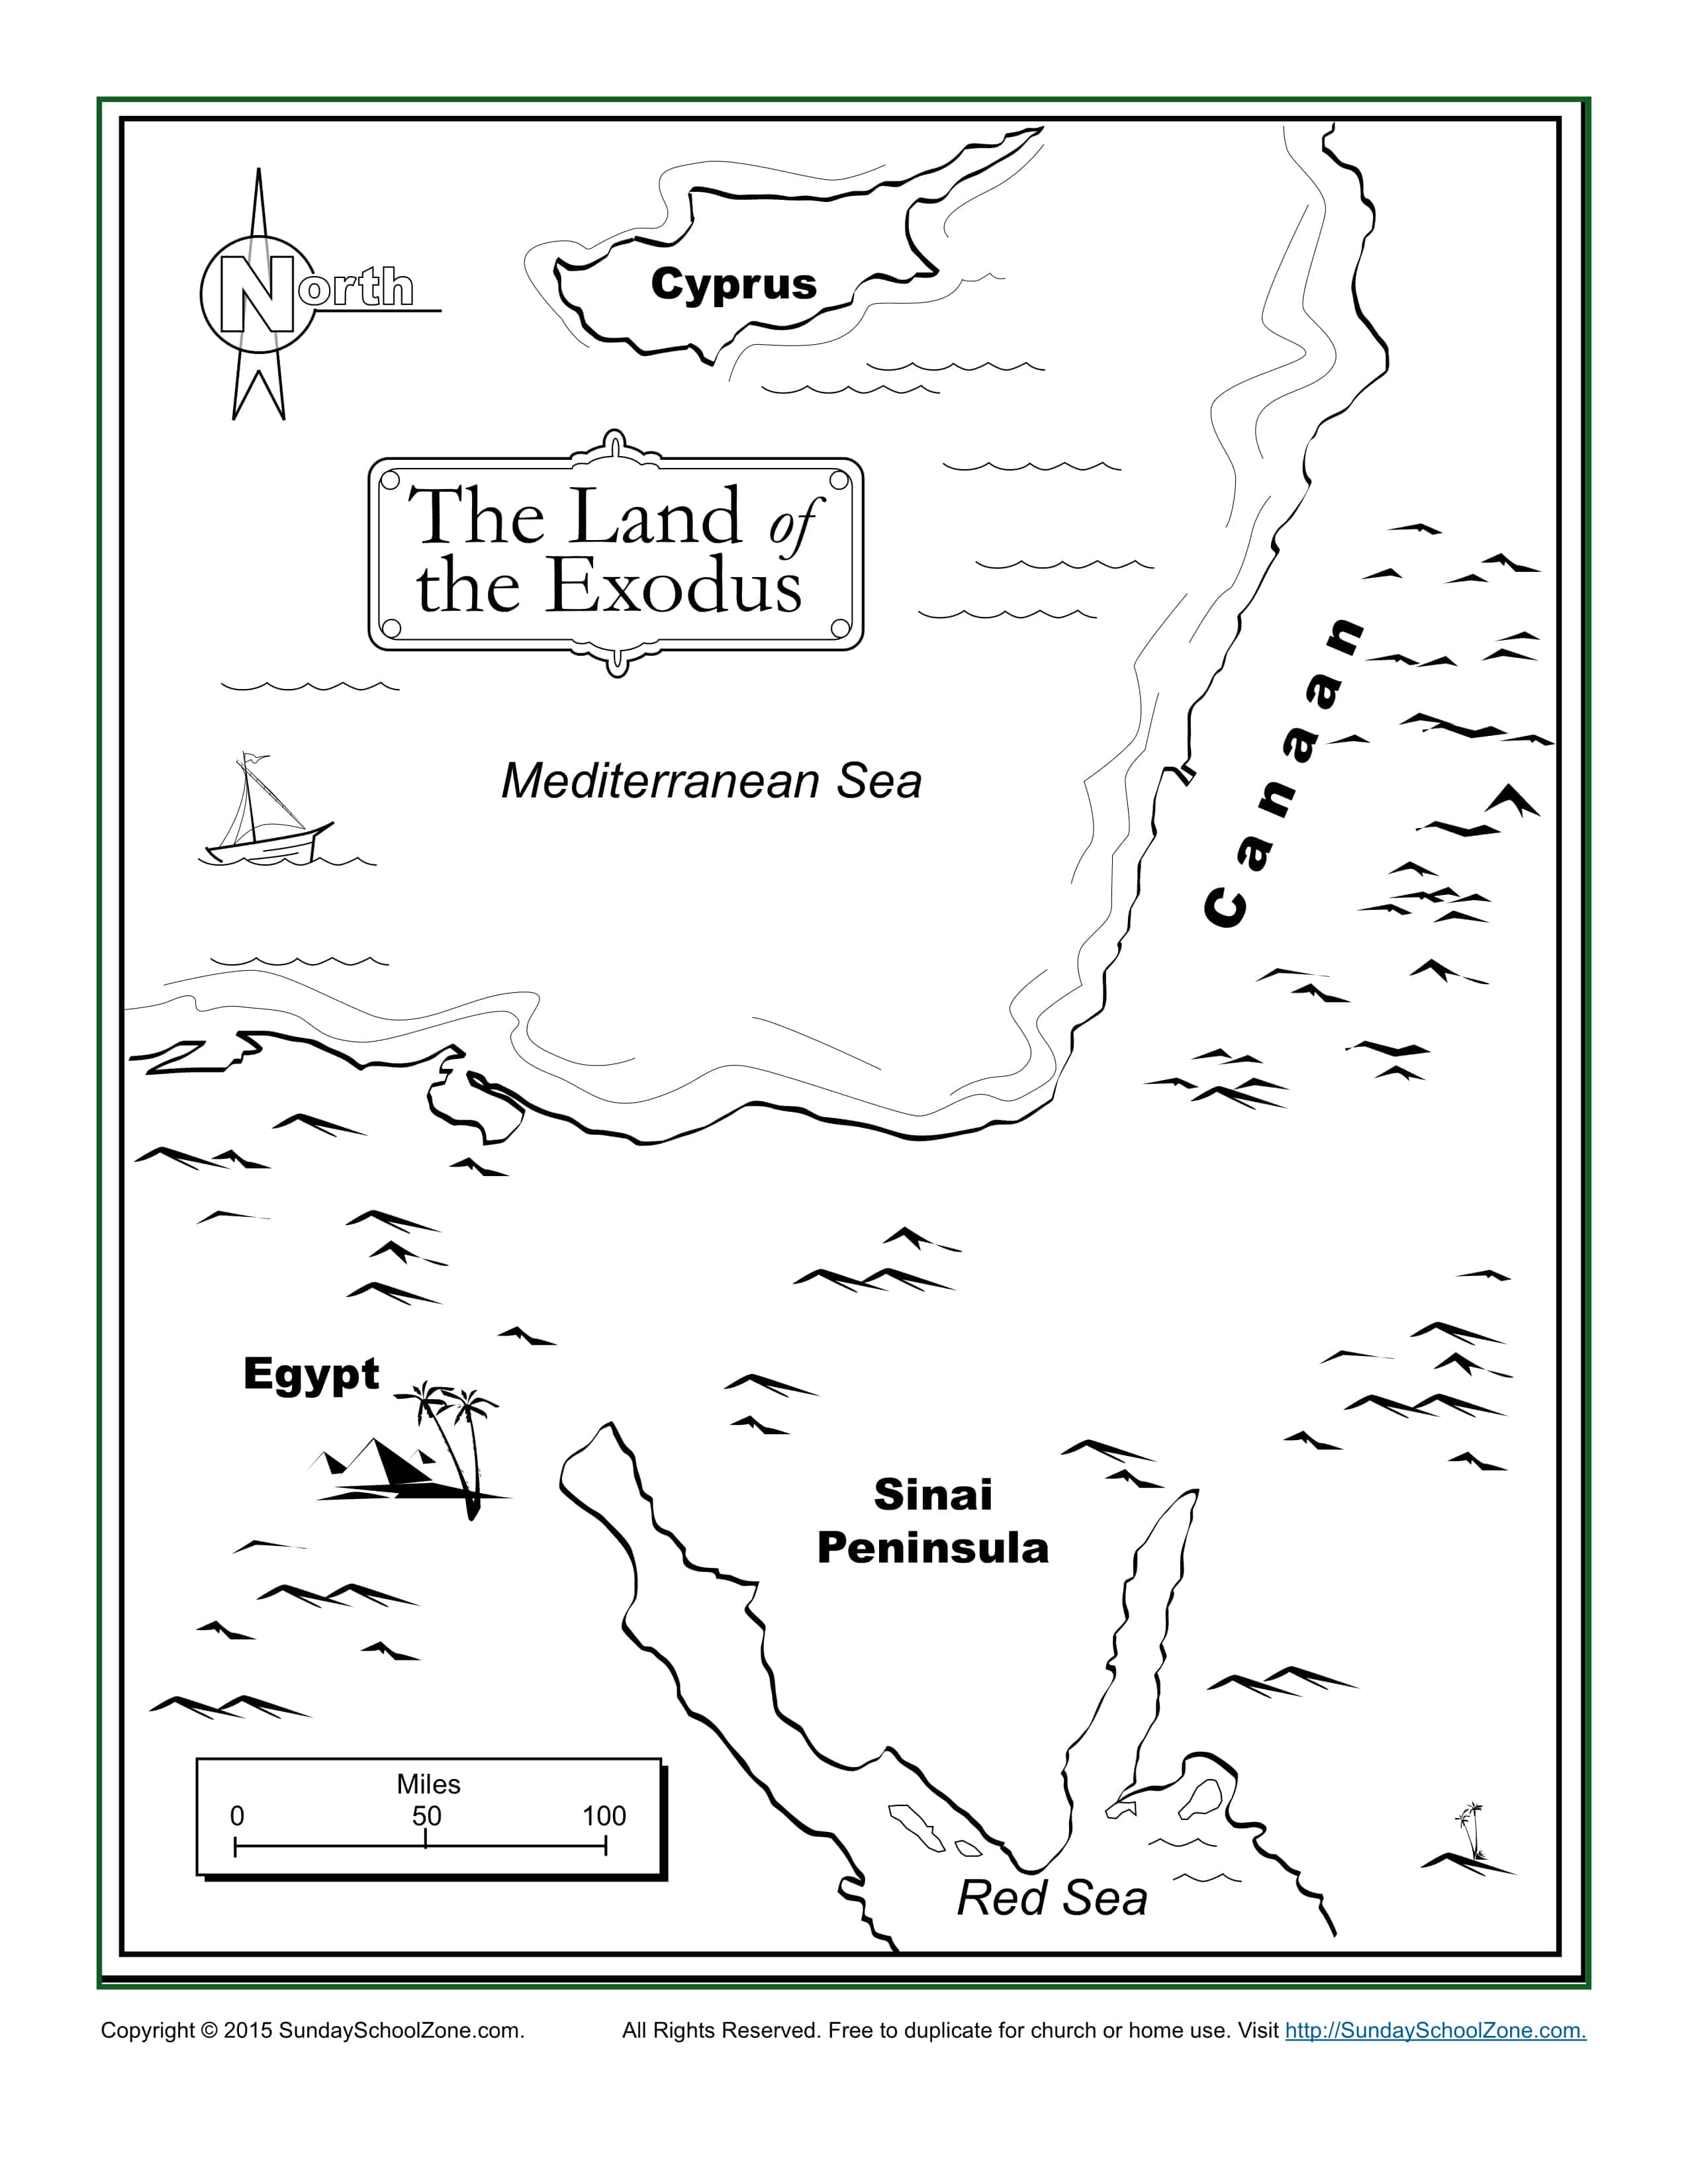 The Land of the Exodus Bible Map - Children's Bible ...